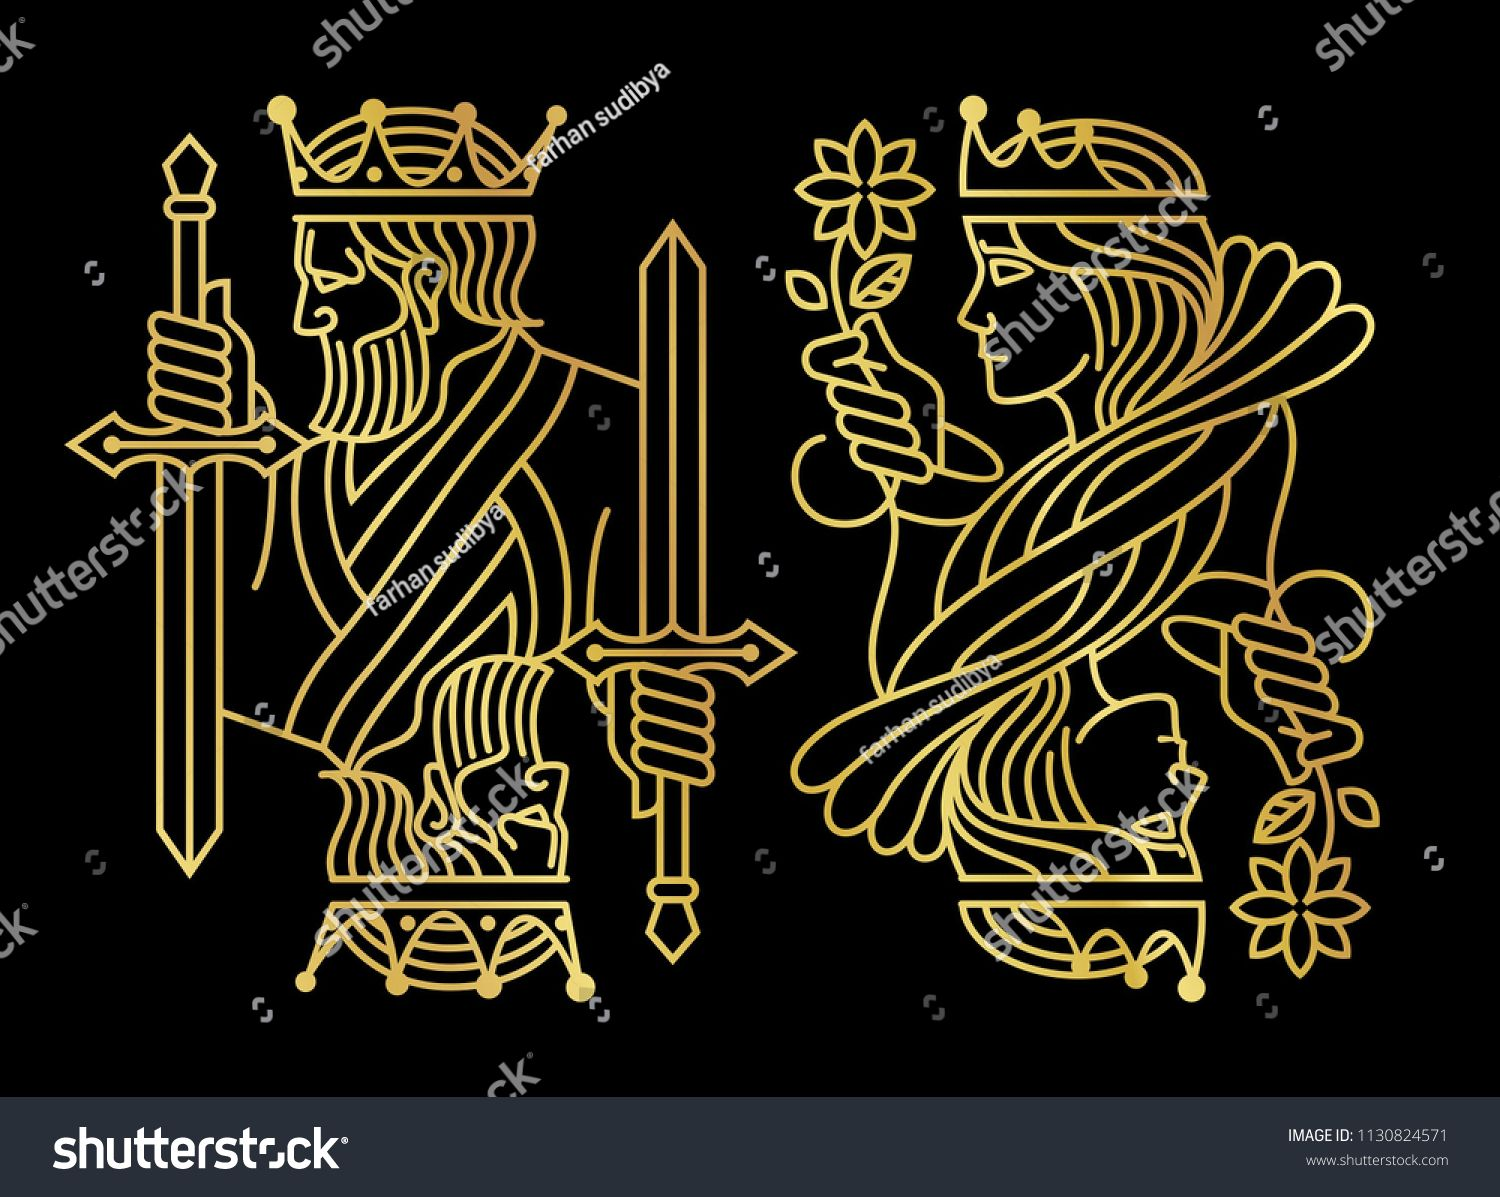 Luxury Golden King And Queen Playing Card In Dark Background Sponsored Sponsored King Queen Luxury Golden Queen Art Dark Backgrounds Cards